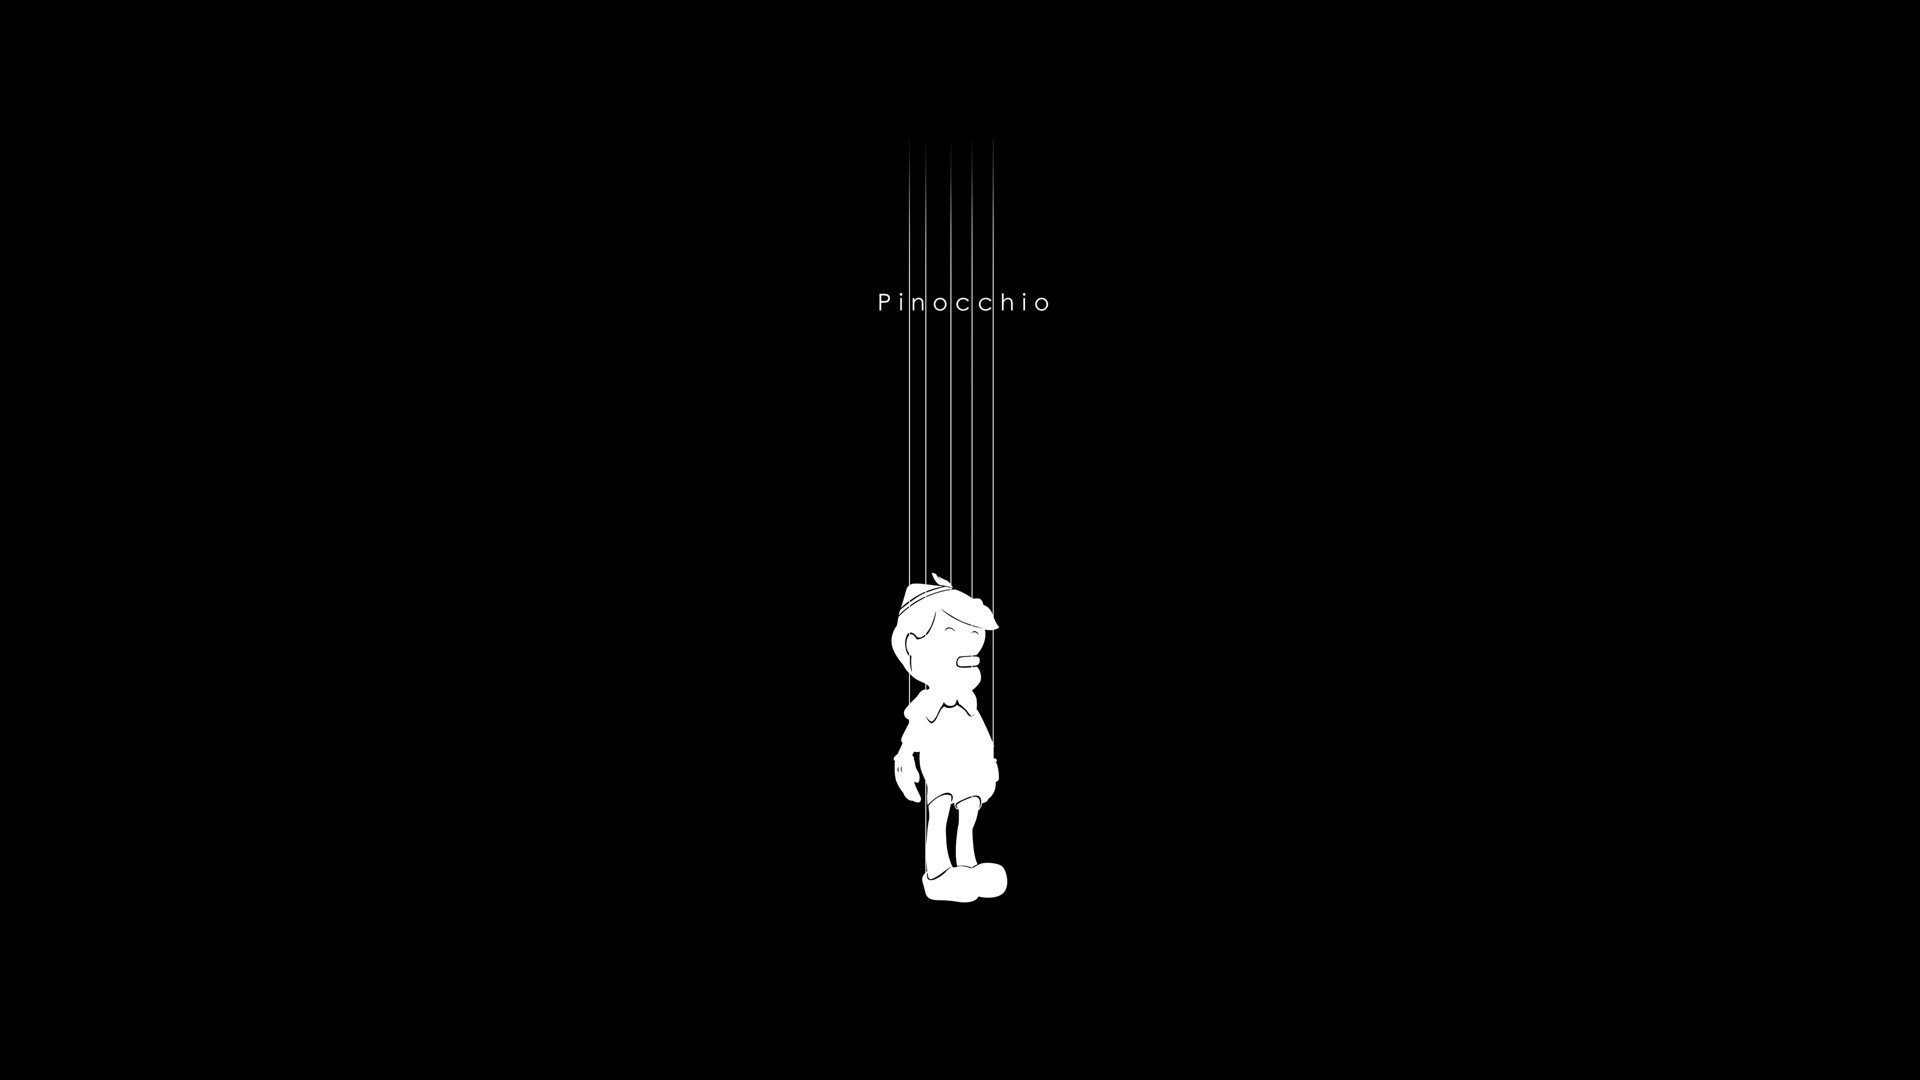 minimalistic pinocchio black background